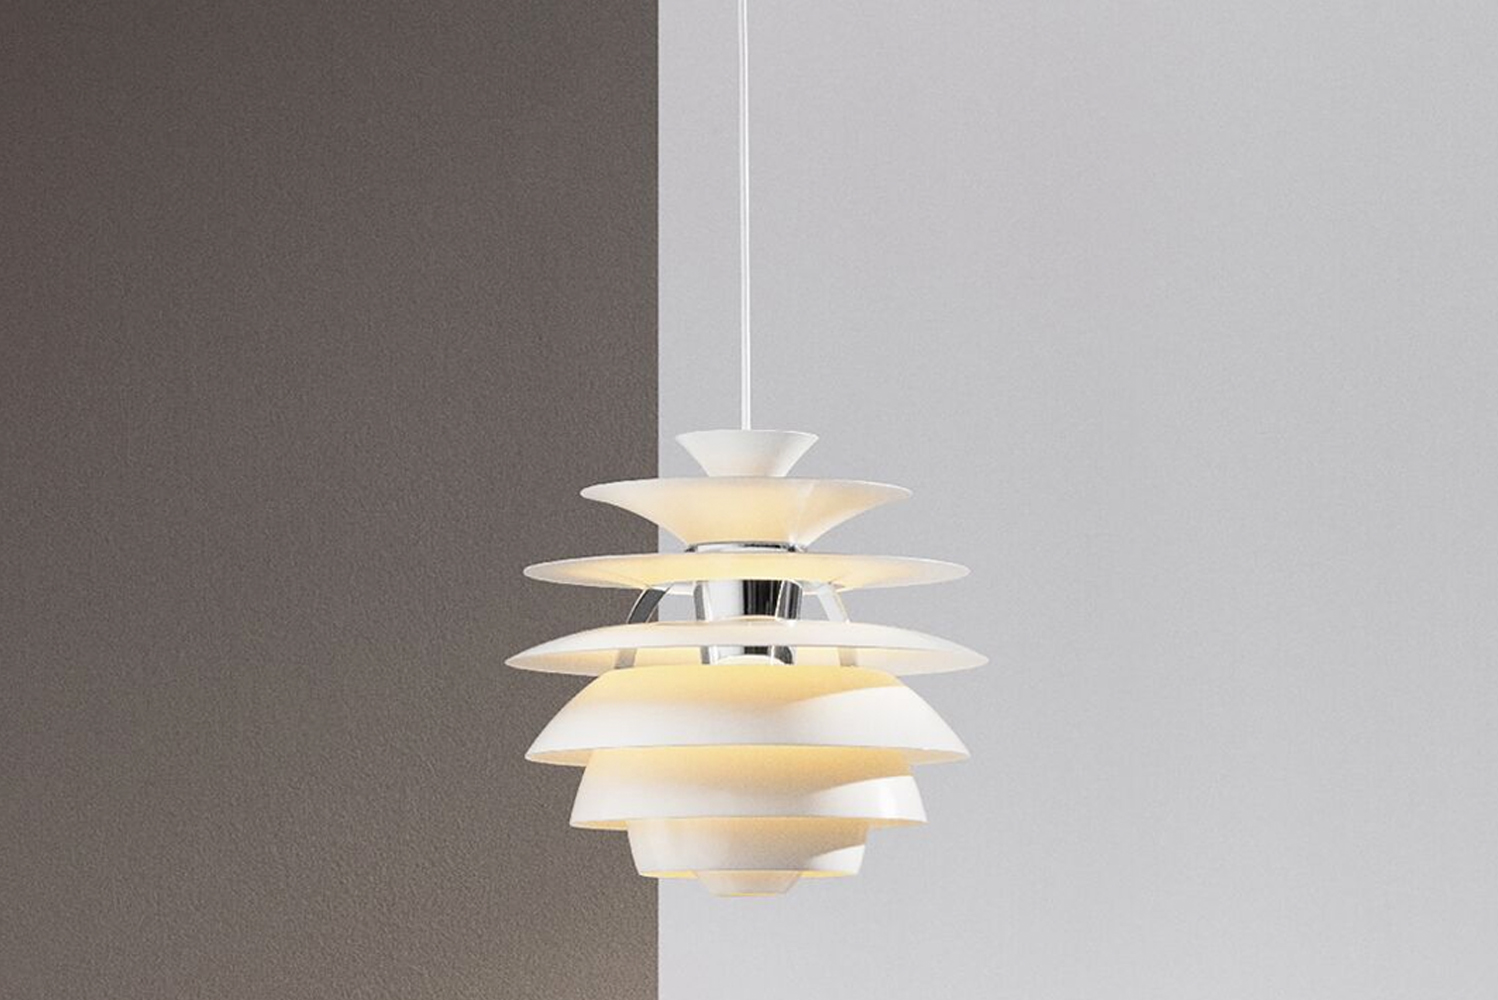 Louis Poulsen announced LED upgrades to its popular fixtures.